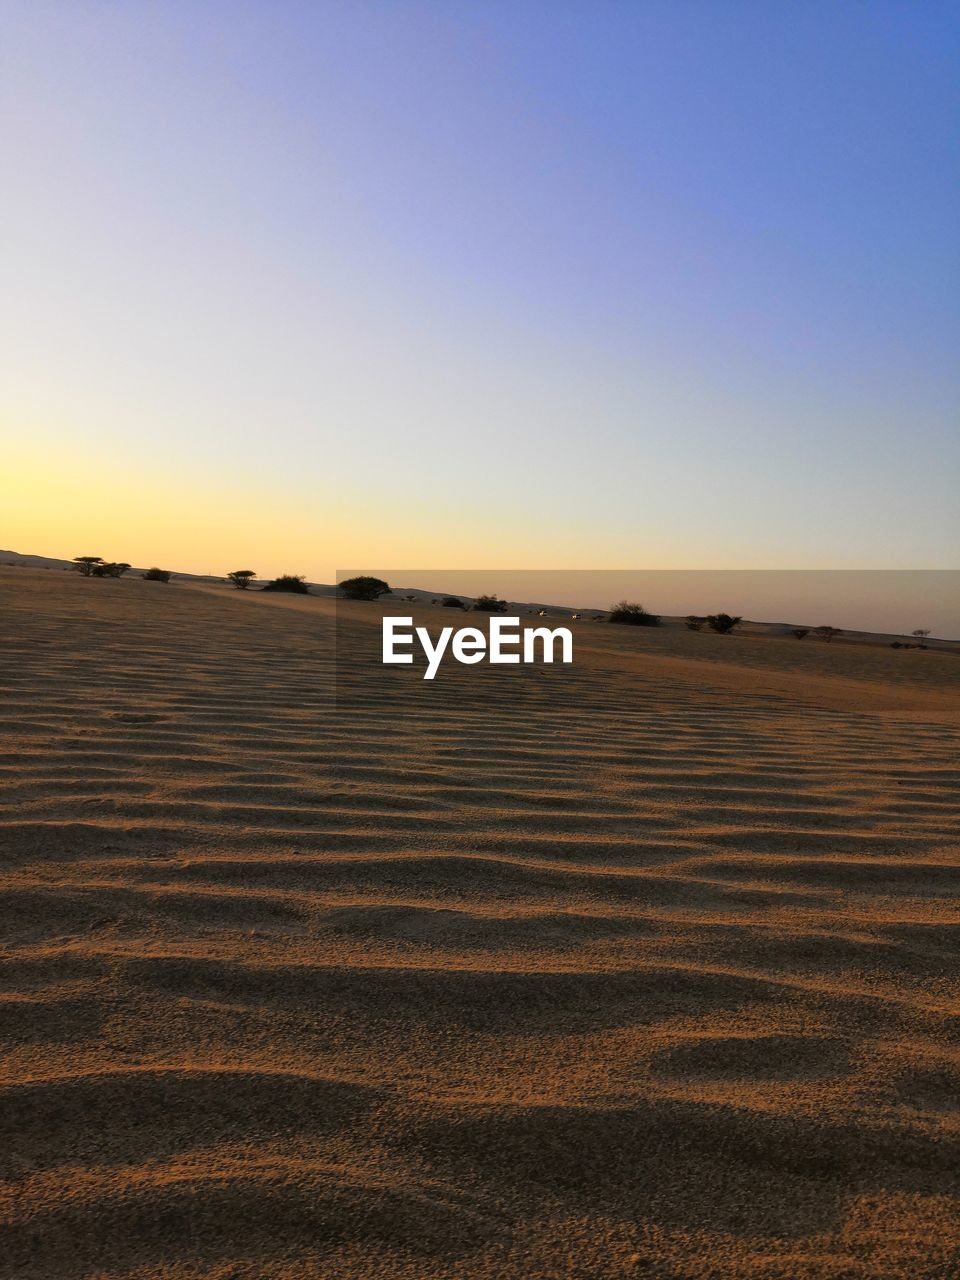 sky, landscape, tranquility, tranquil scene, scenics - nature, environment, land, clear sky, copy space, field, beauty in nature, no people, sunset, nature, non-urban scene, horizon, agriculture, outdoors, sand, rural scene, arid climate